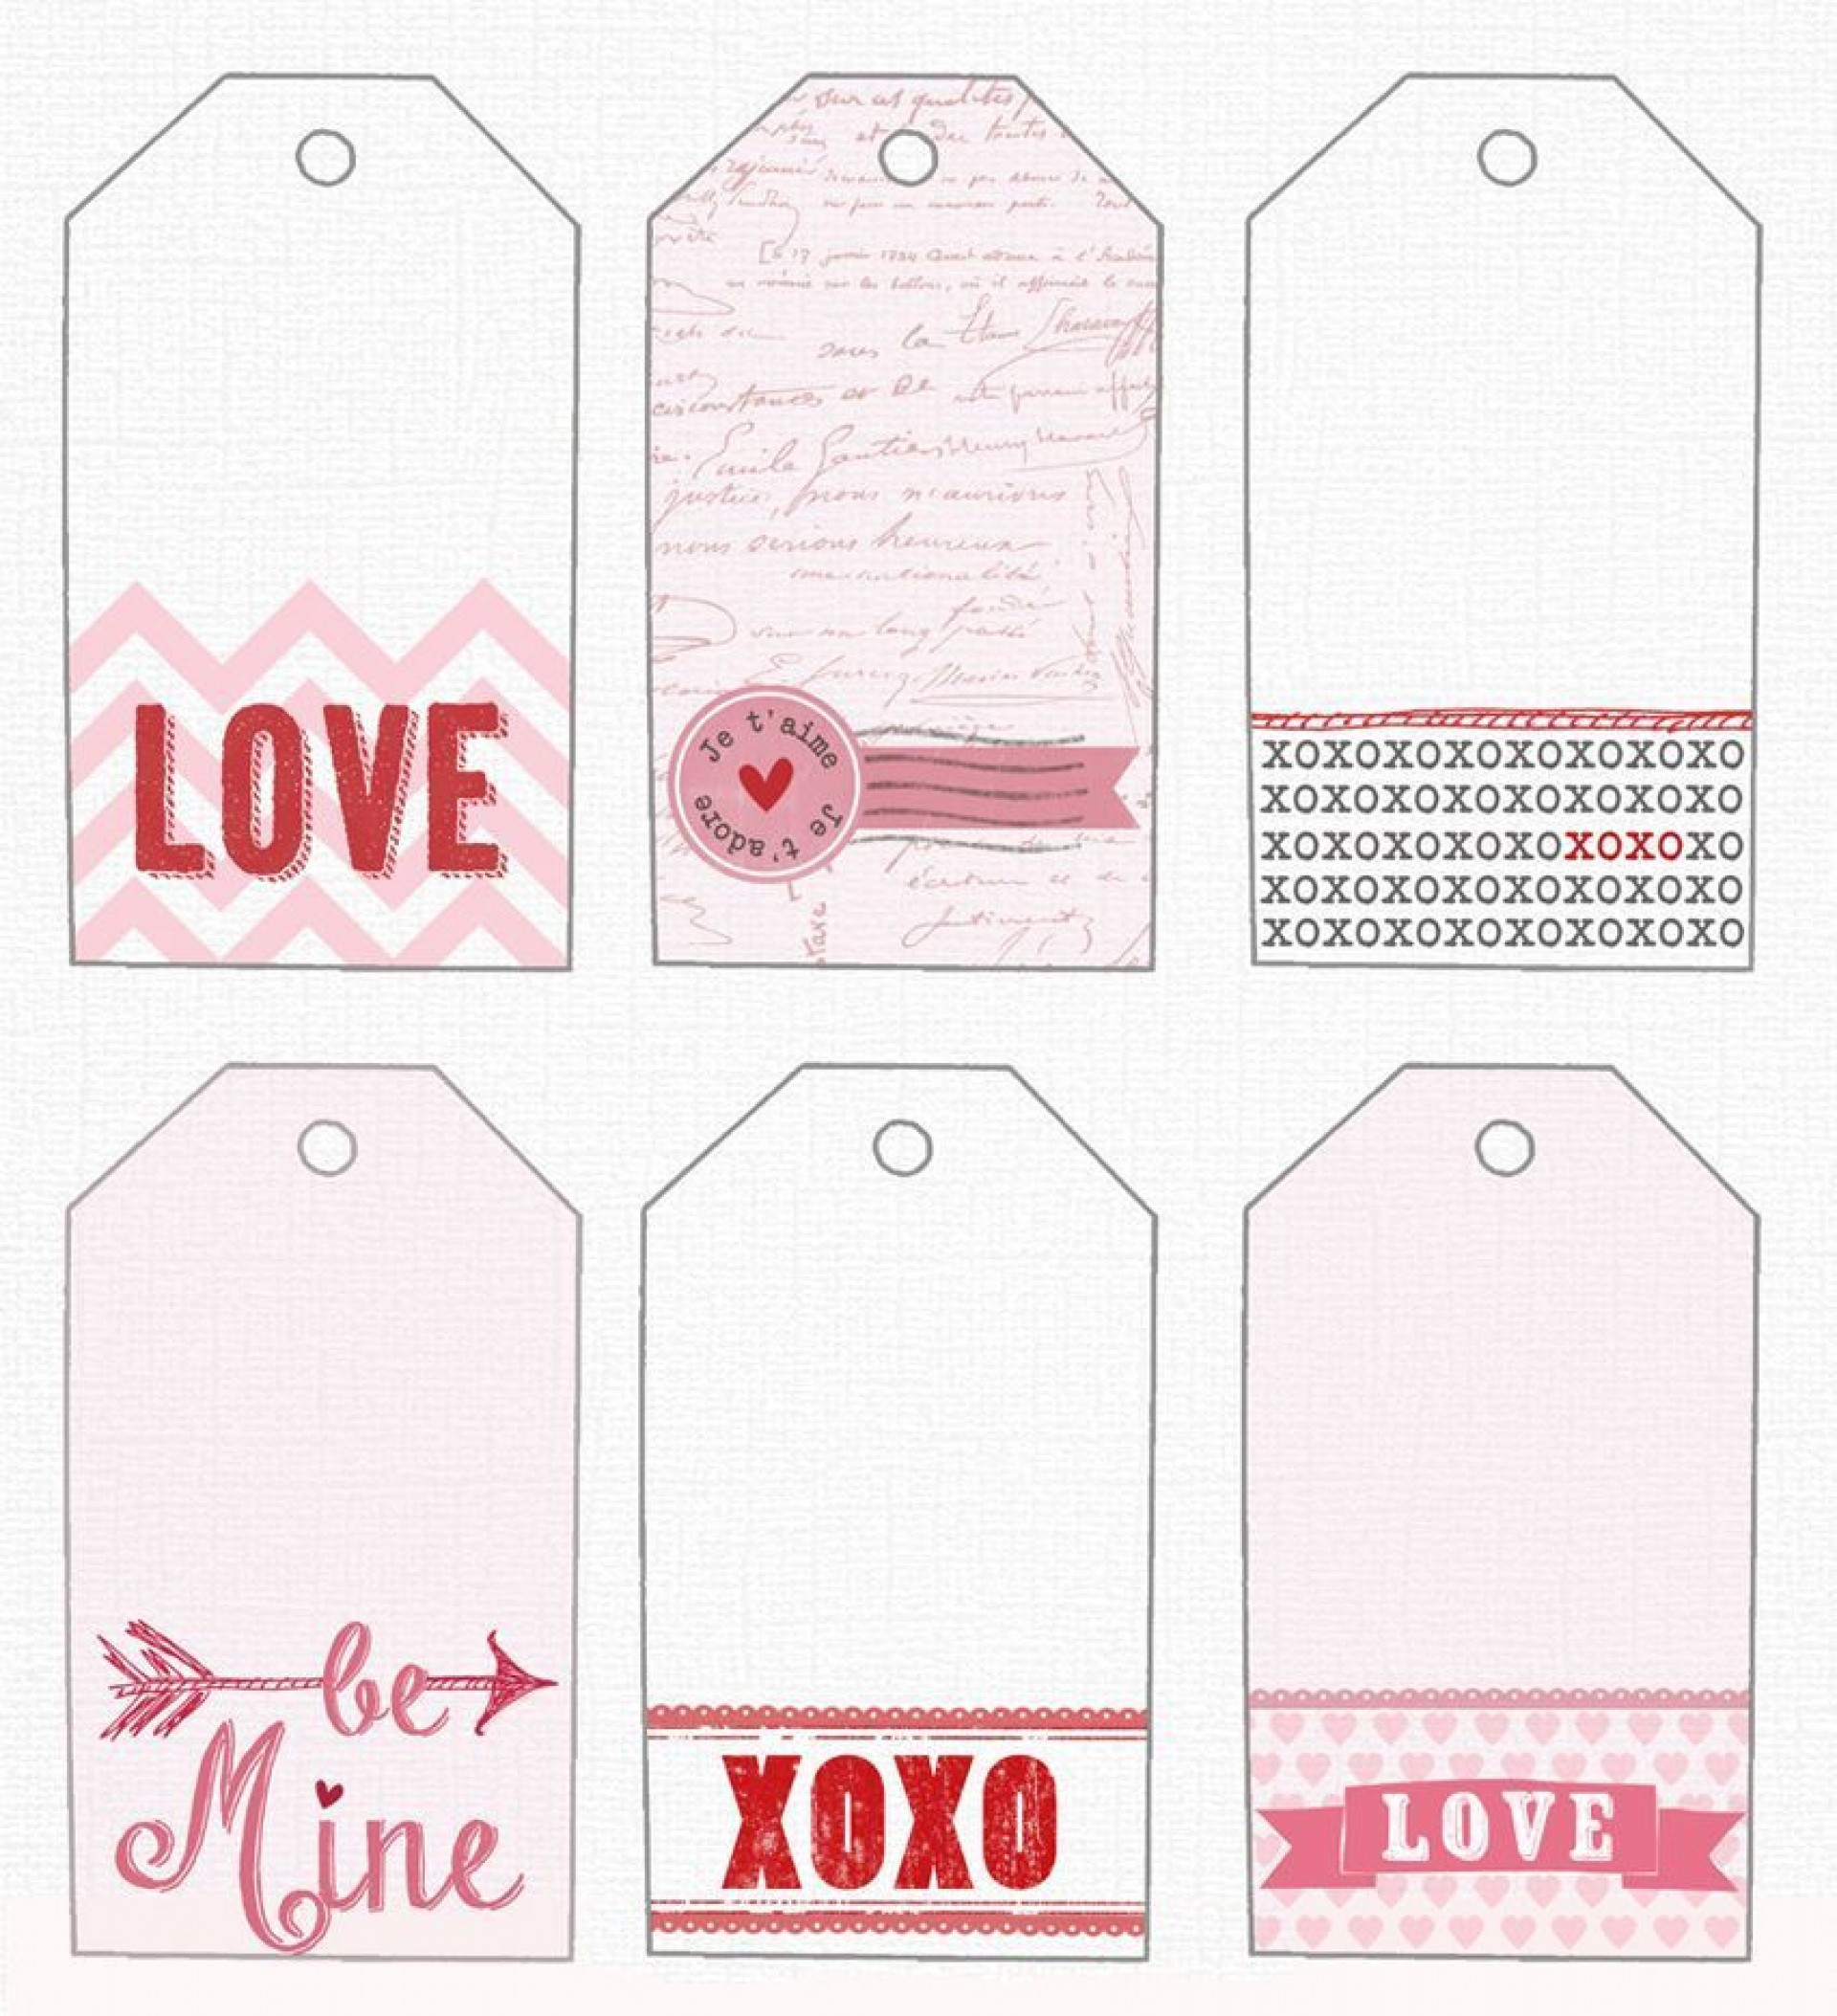 003 Unusual Template For Gift Tag Highest Quality  Tags Blank Avery1920